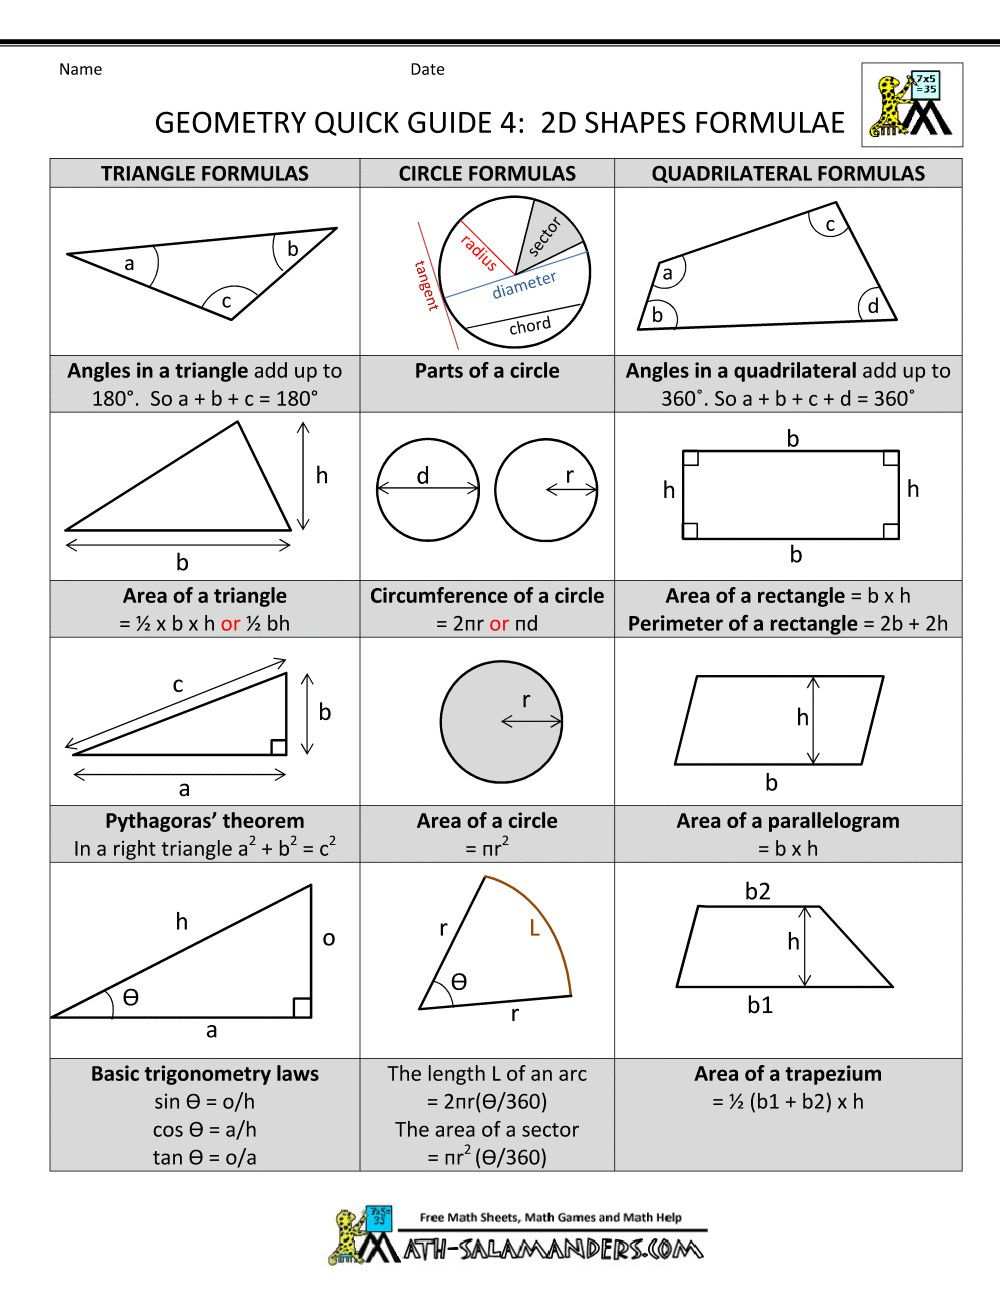 7 Finding Missing Angles Worksheet Answers in 2020